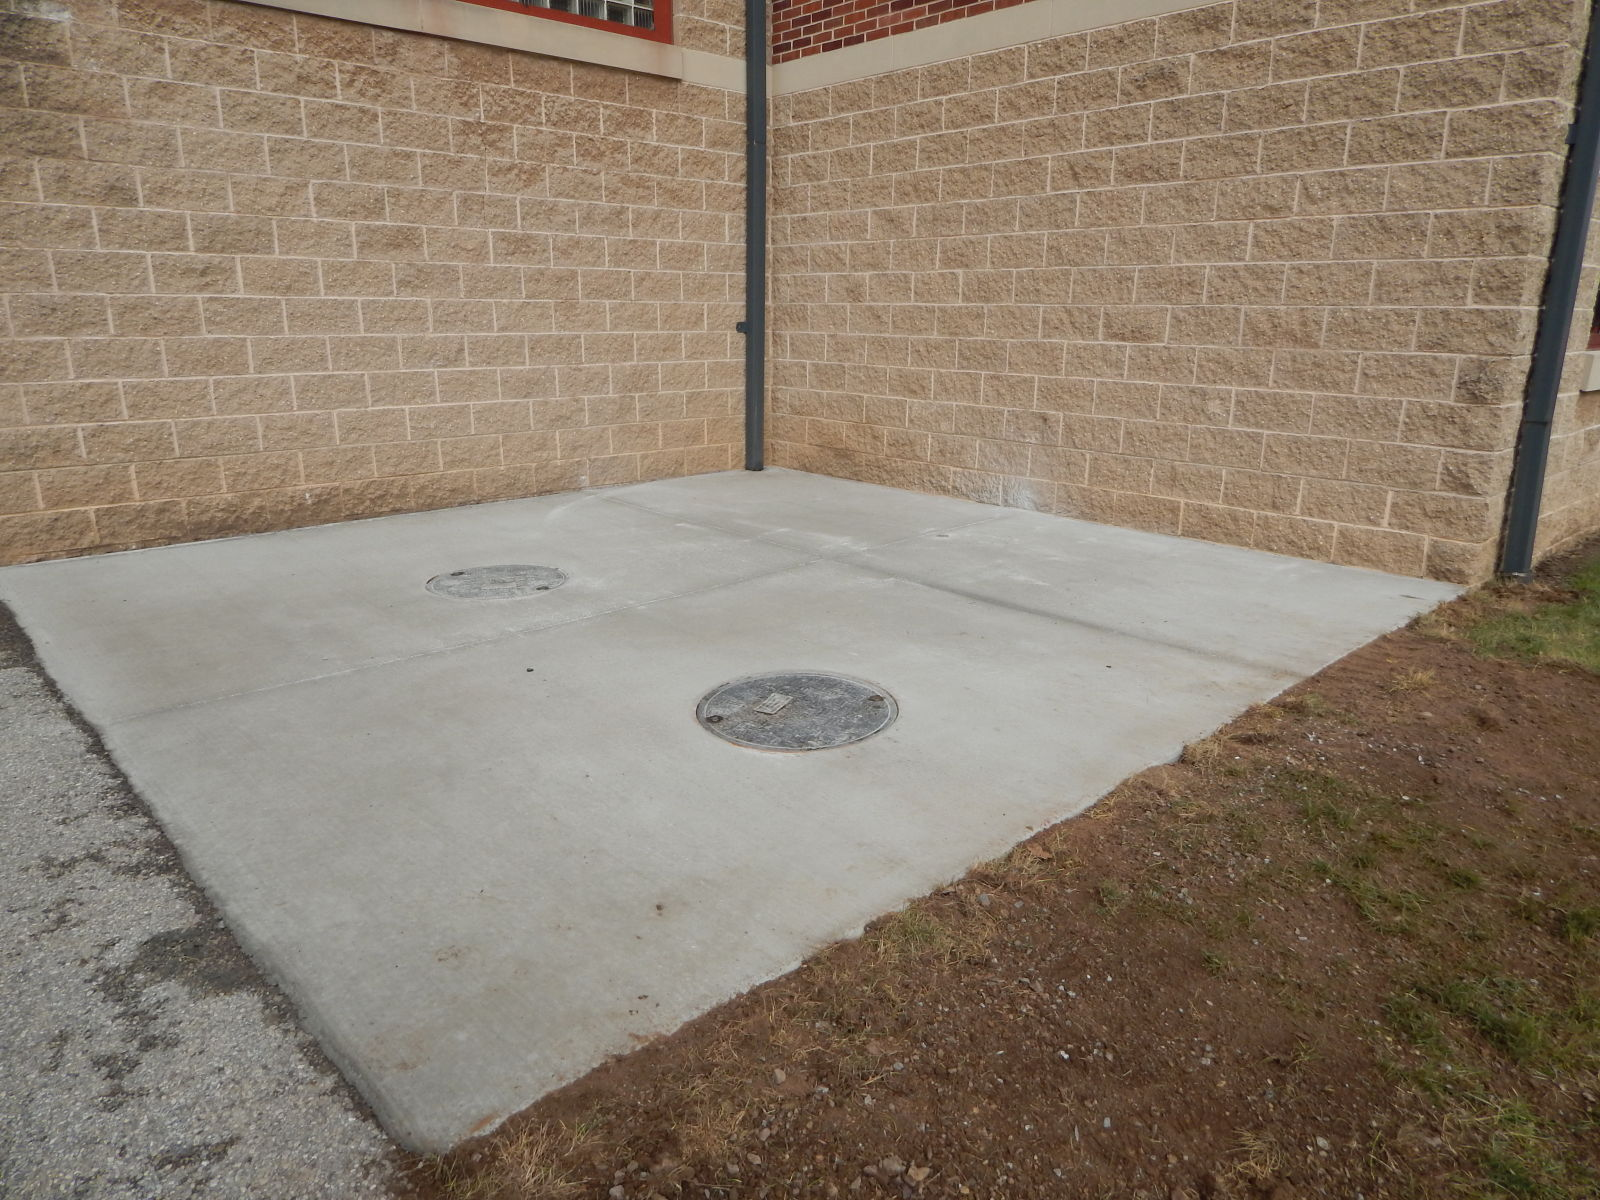 concrete pad with manhole cover